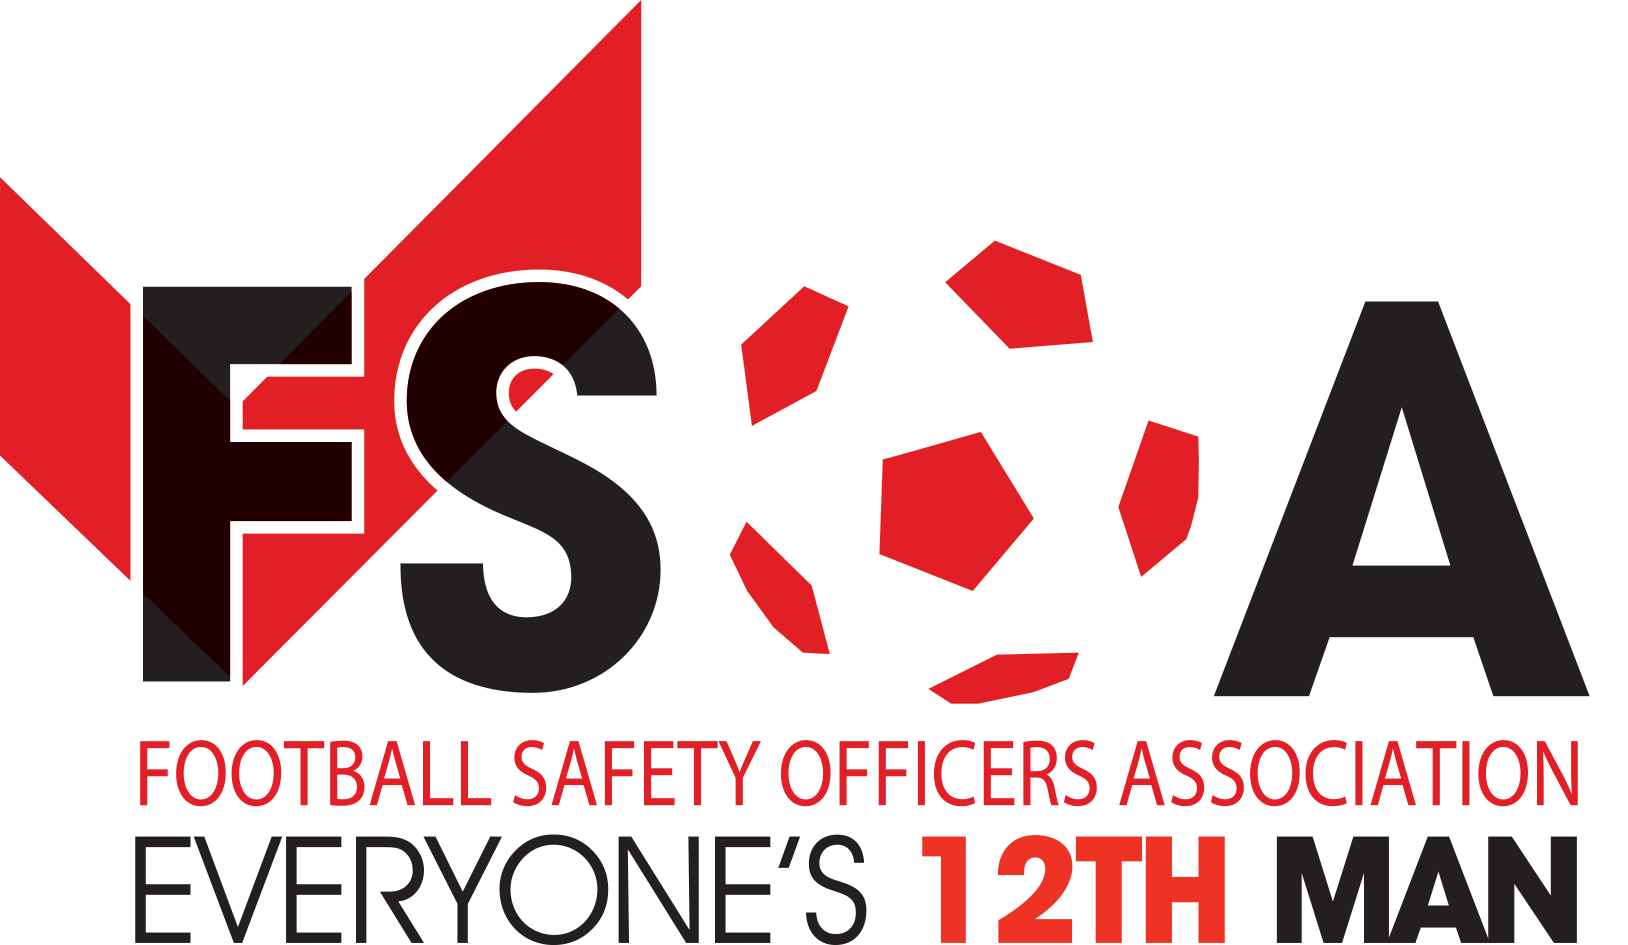 The Football Safety Officers Association